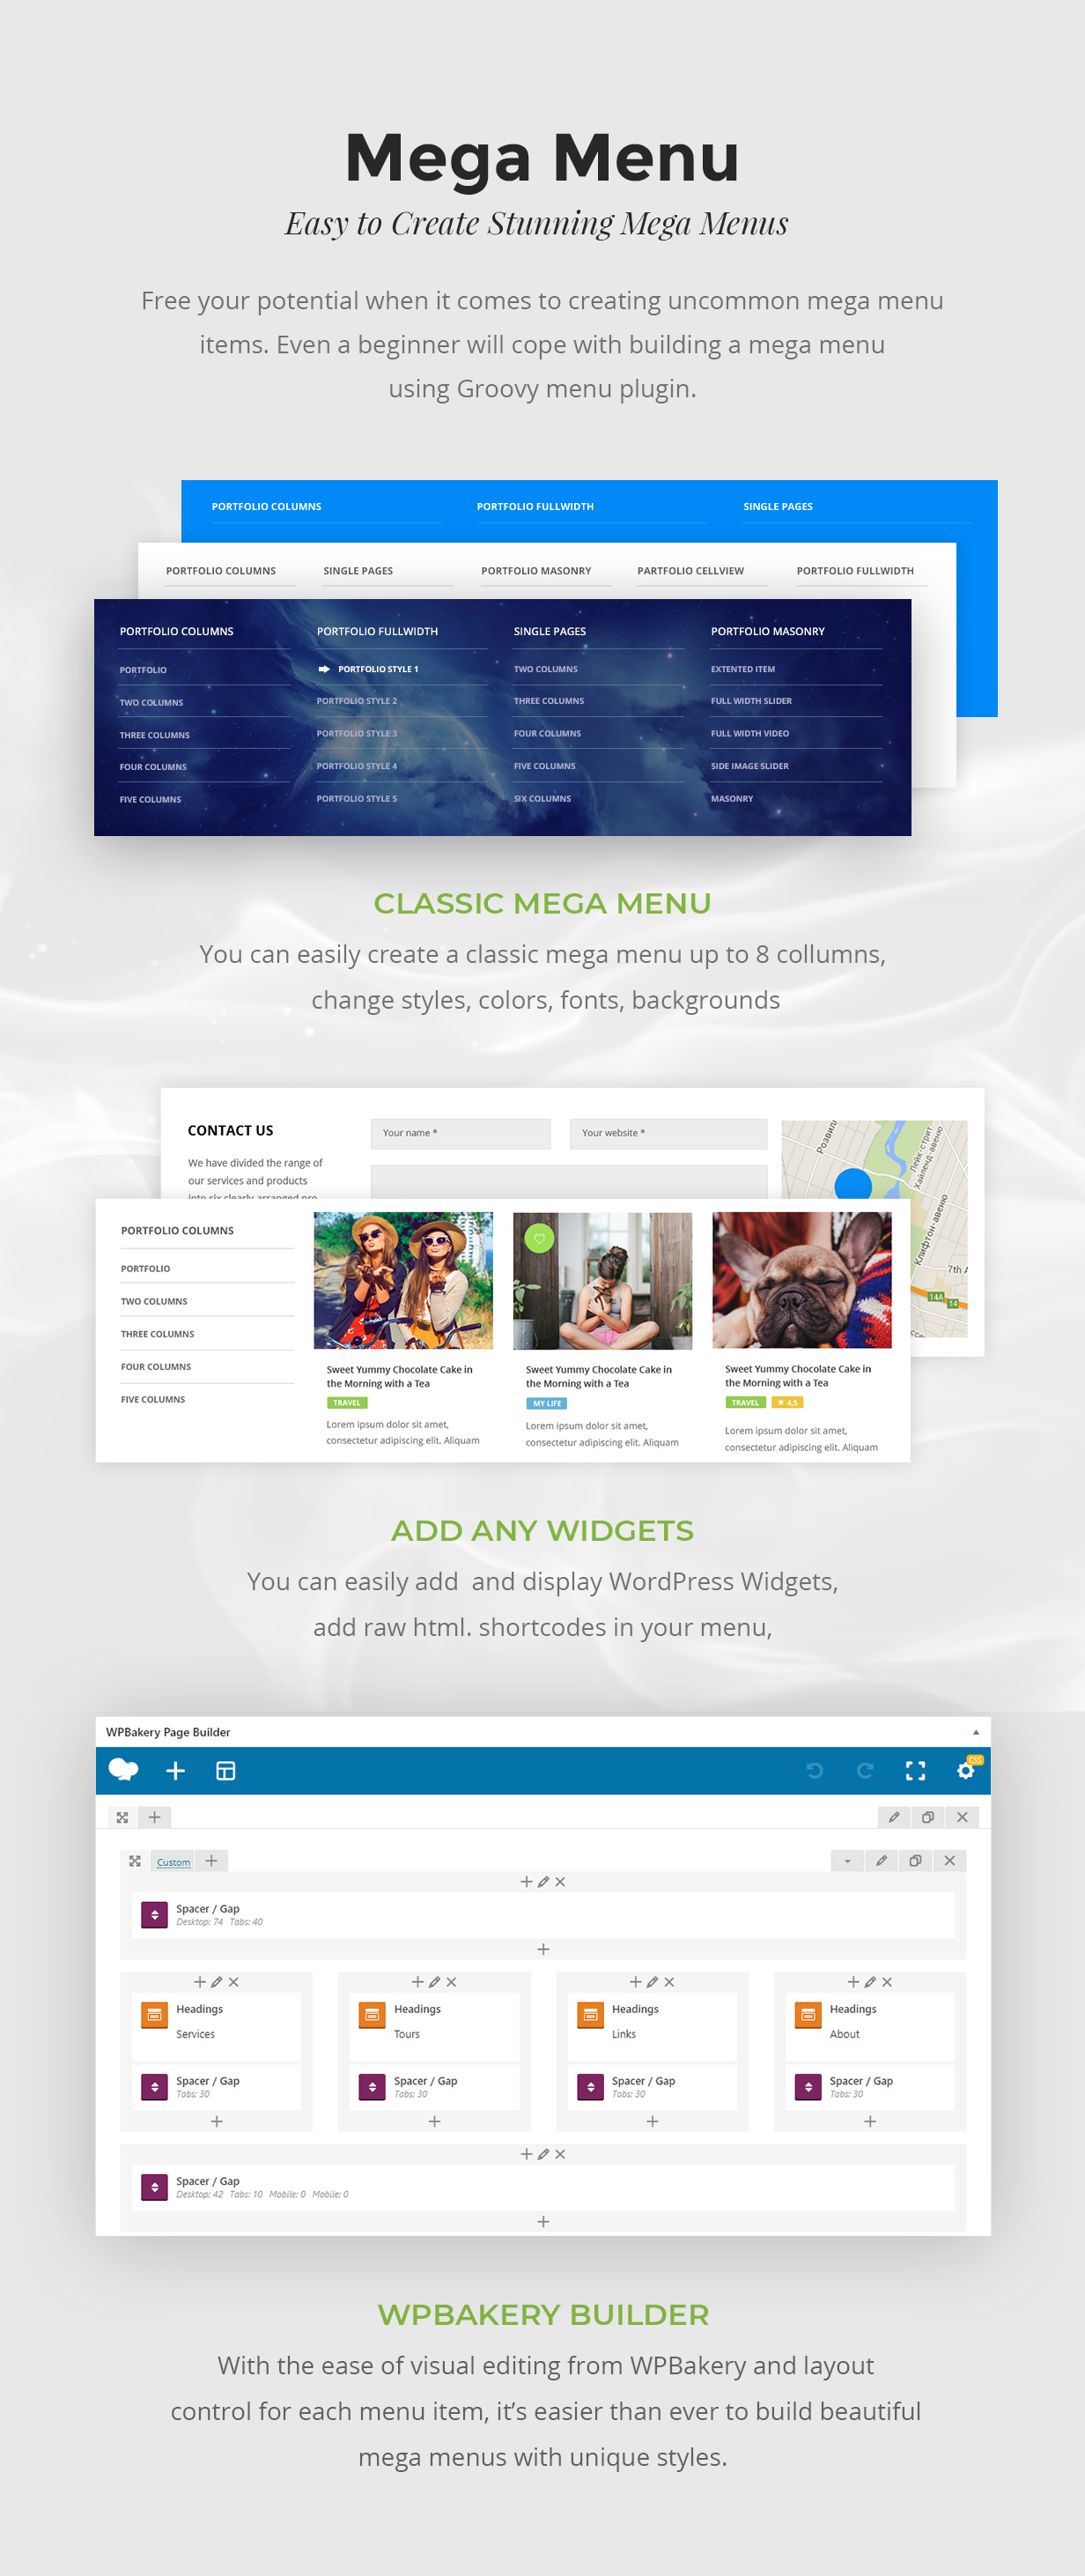 Mega Menu WordPress Plugin, WPBakery, Elementor, Beaver Builder, SiteOrigin, Visual Composer widgets